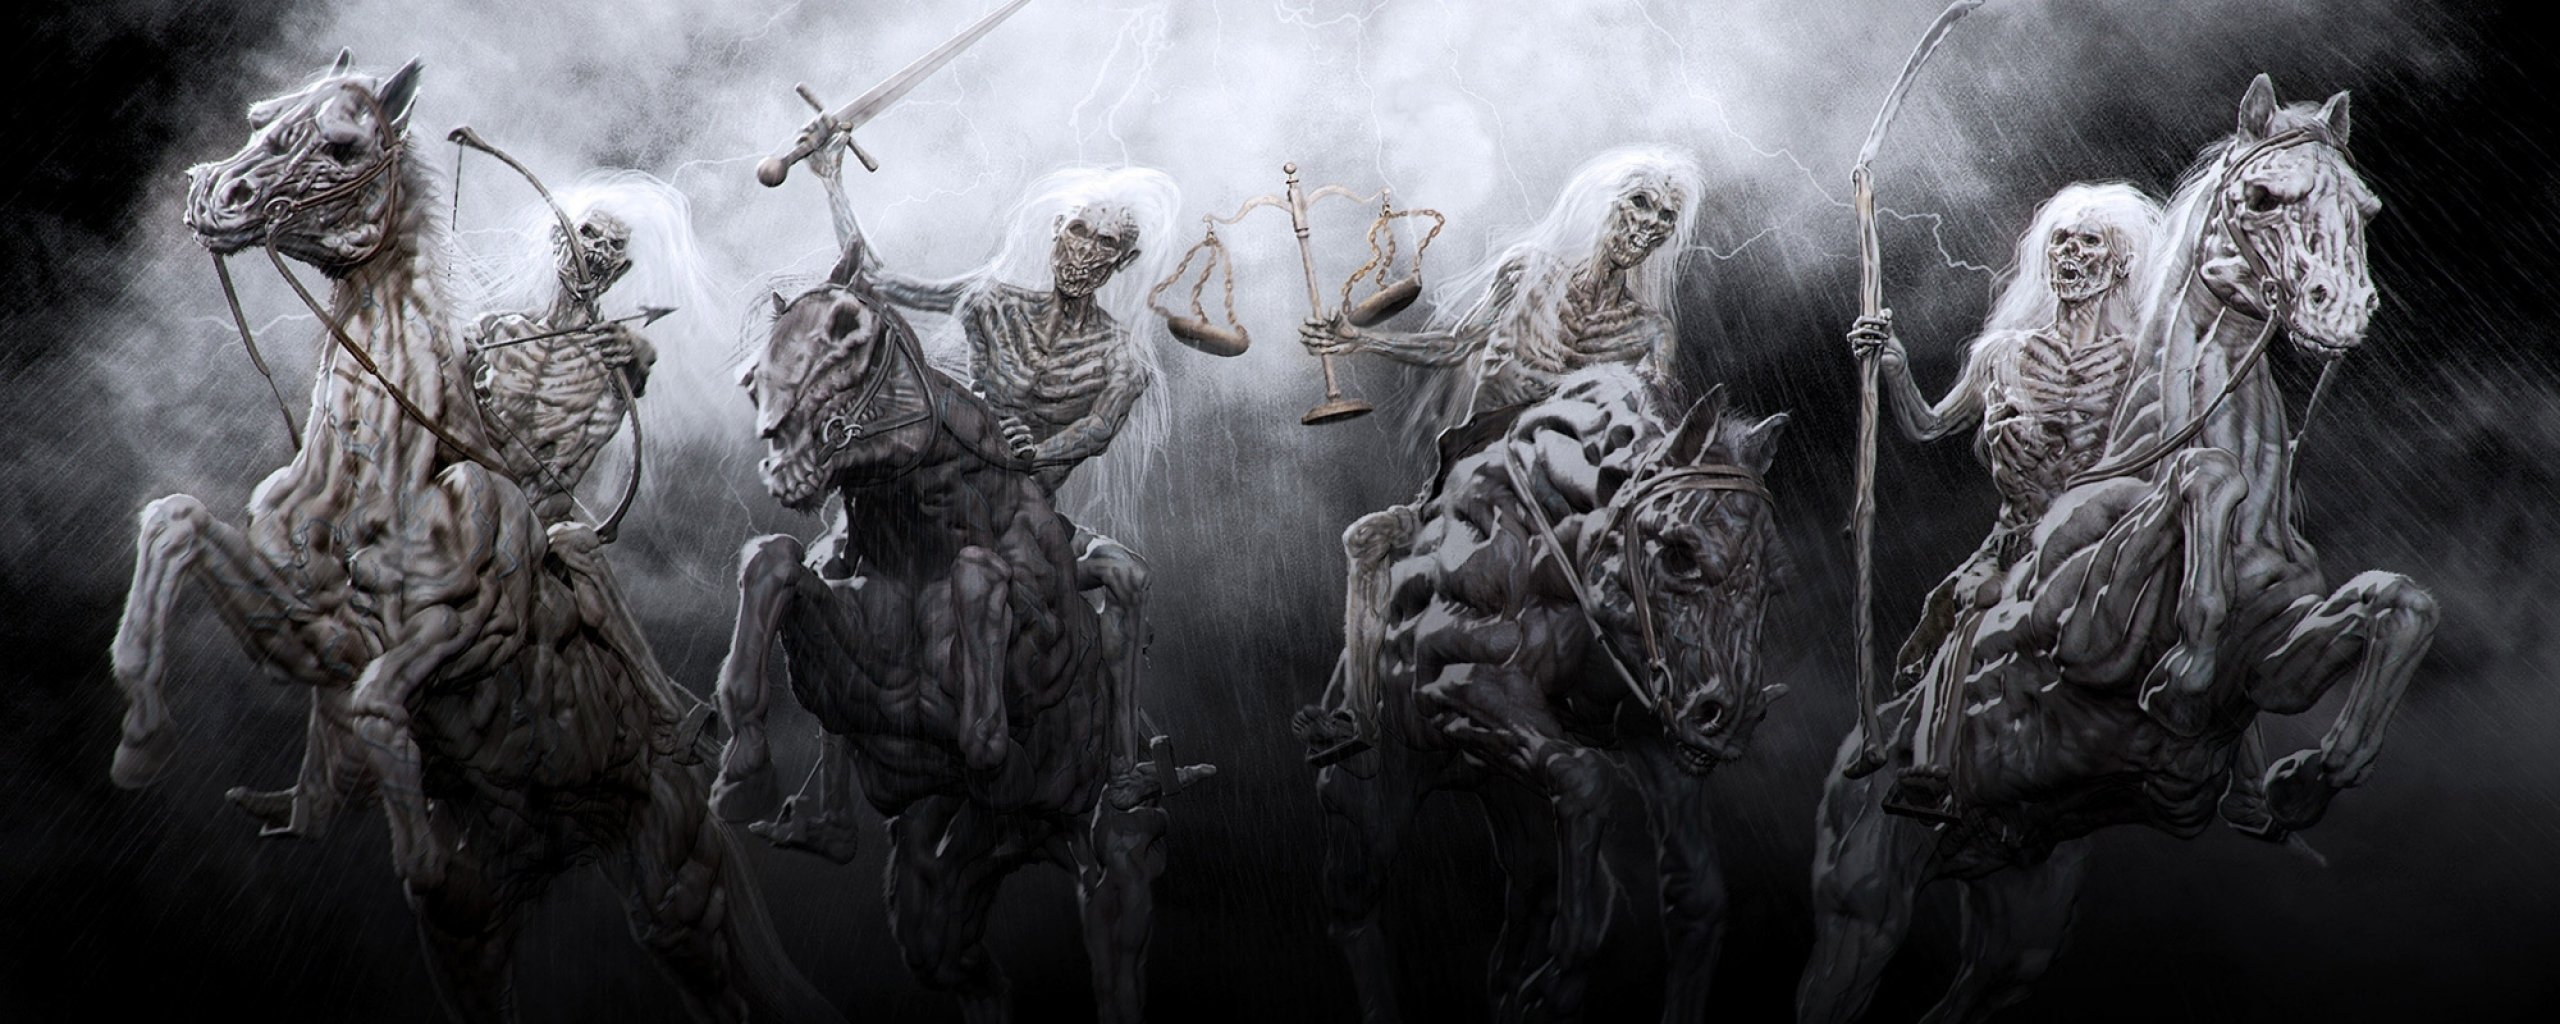 The Four Horsemen Of The Apocalypse Wallpaper And Background Image